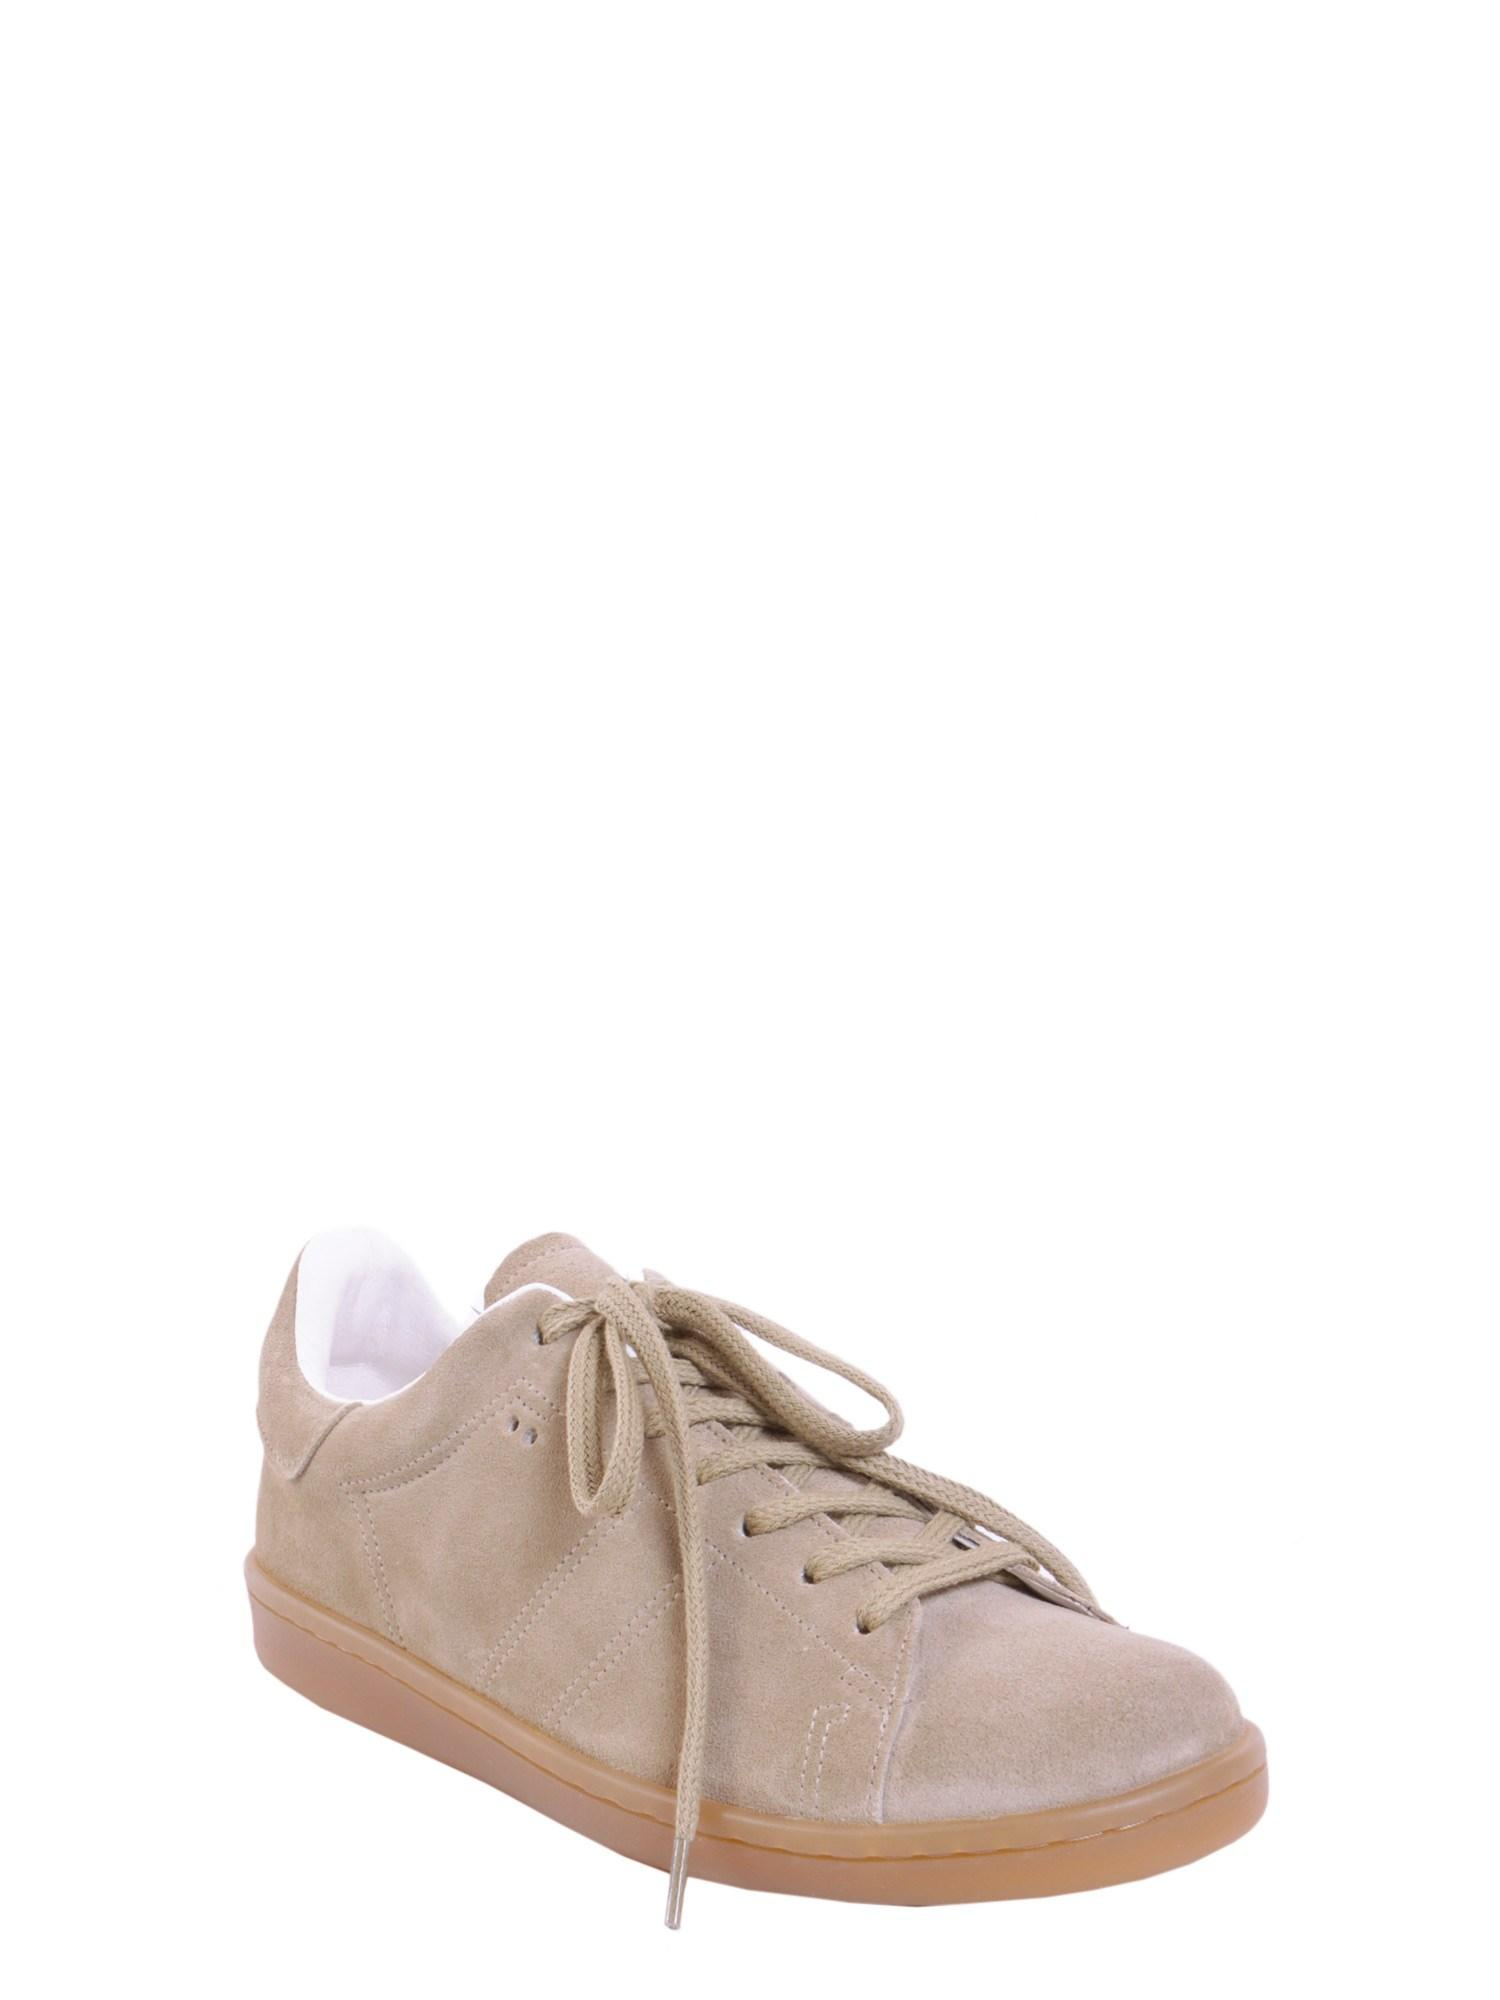 Étoile Isabel Marant Bart Suede Sneakers